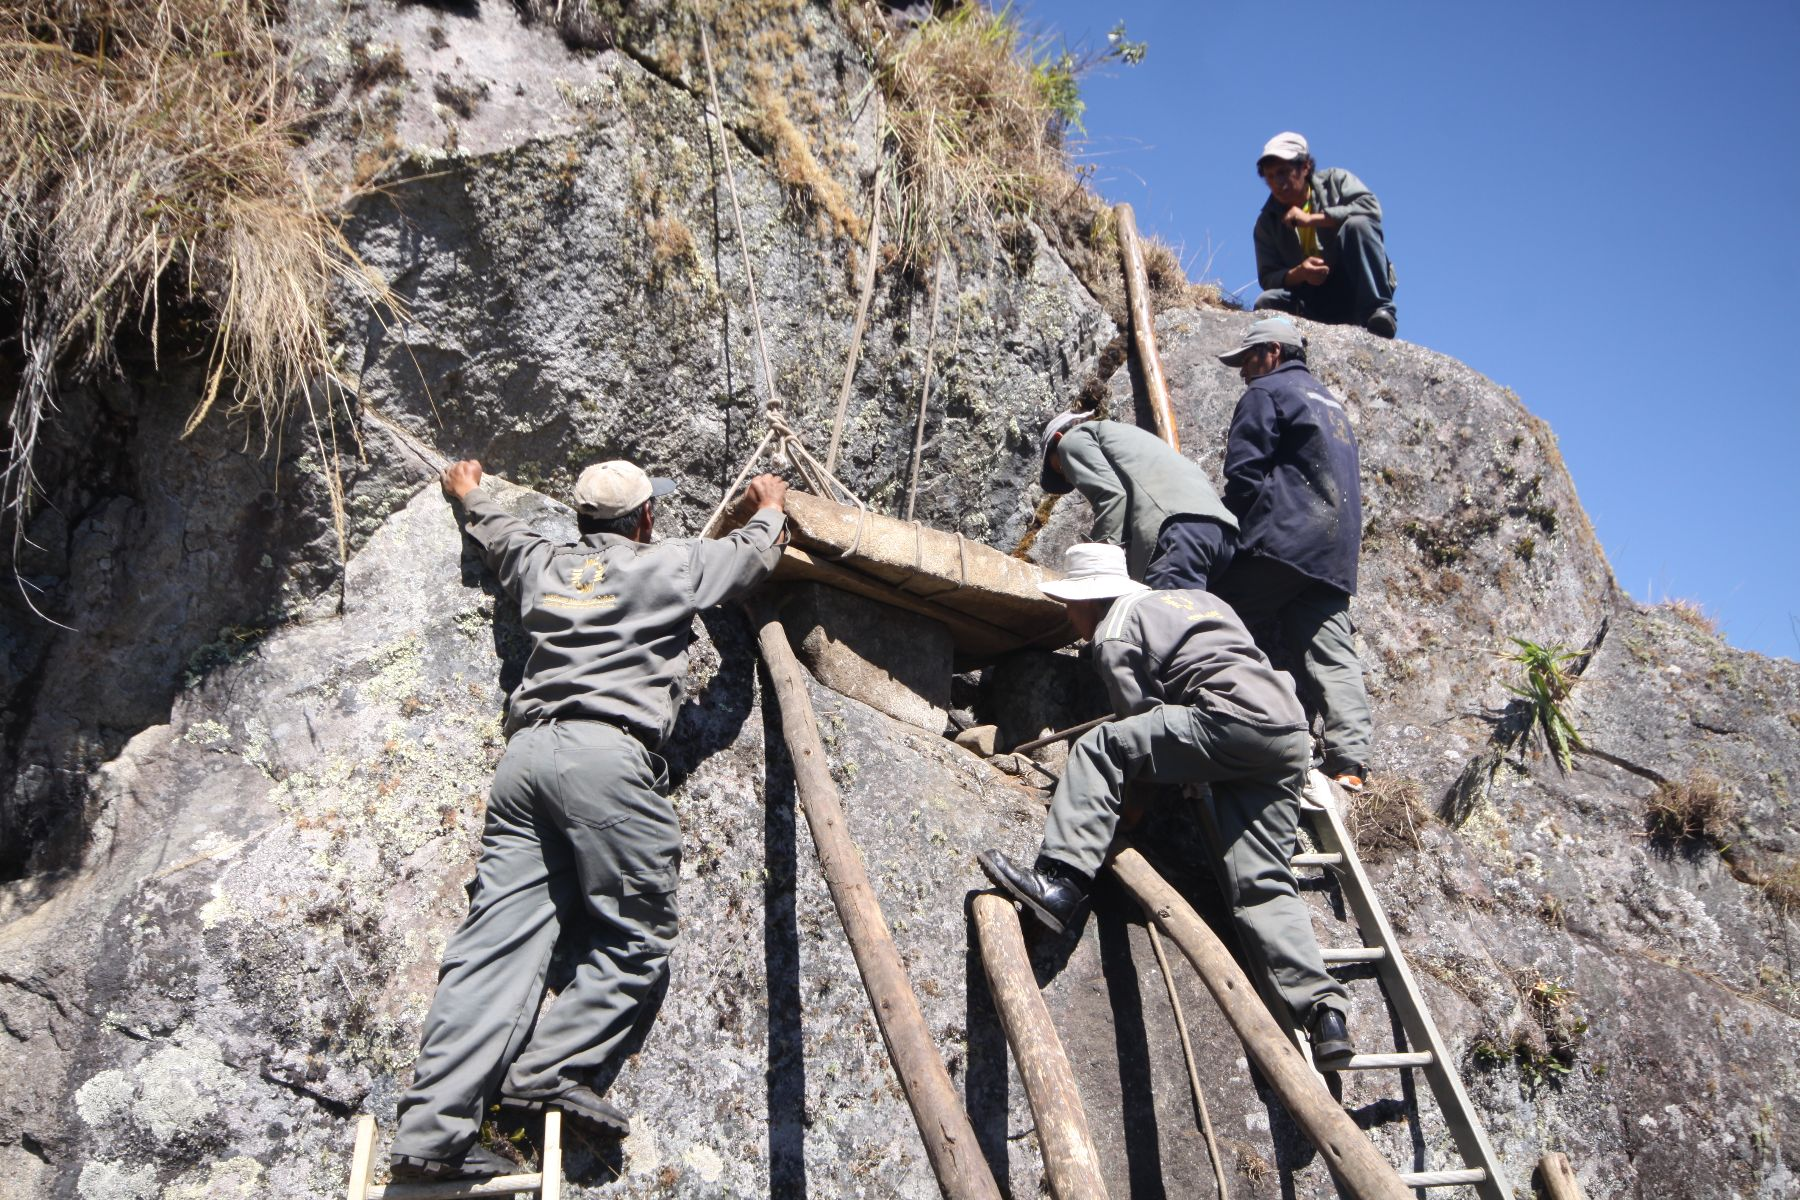 A tomb which probably belonged to a high-ranking member of the Inca culture was found at the Machu Picchu Archaeological Park in Cusco, Peru.